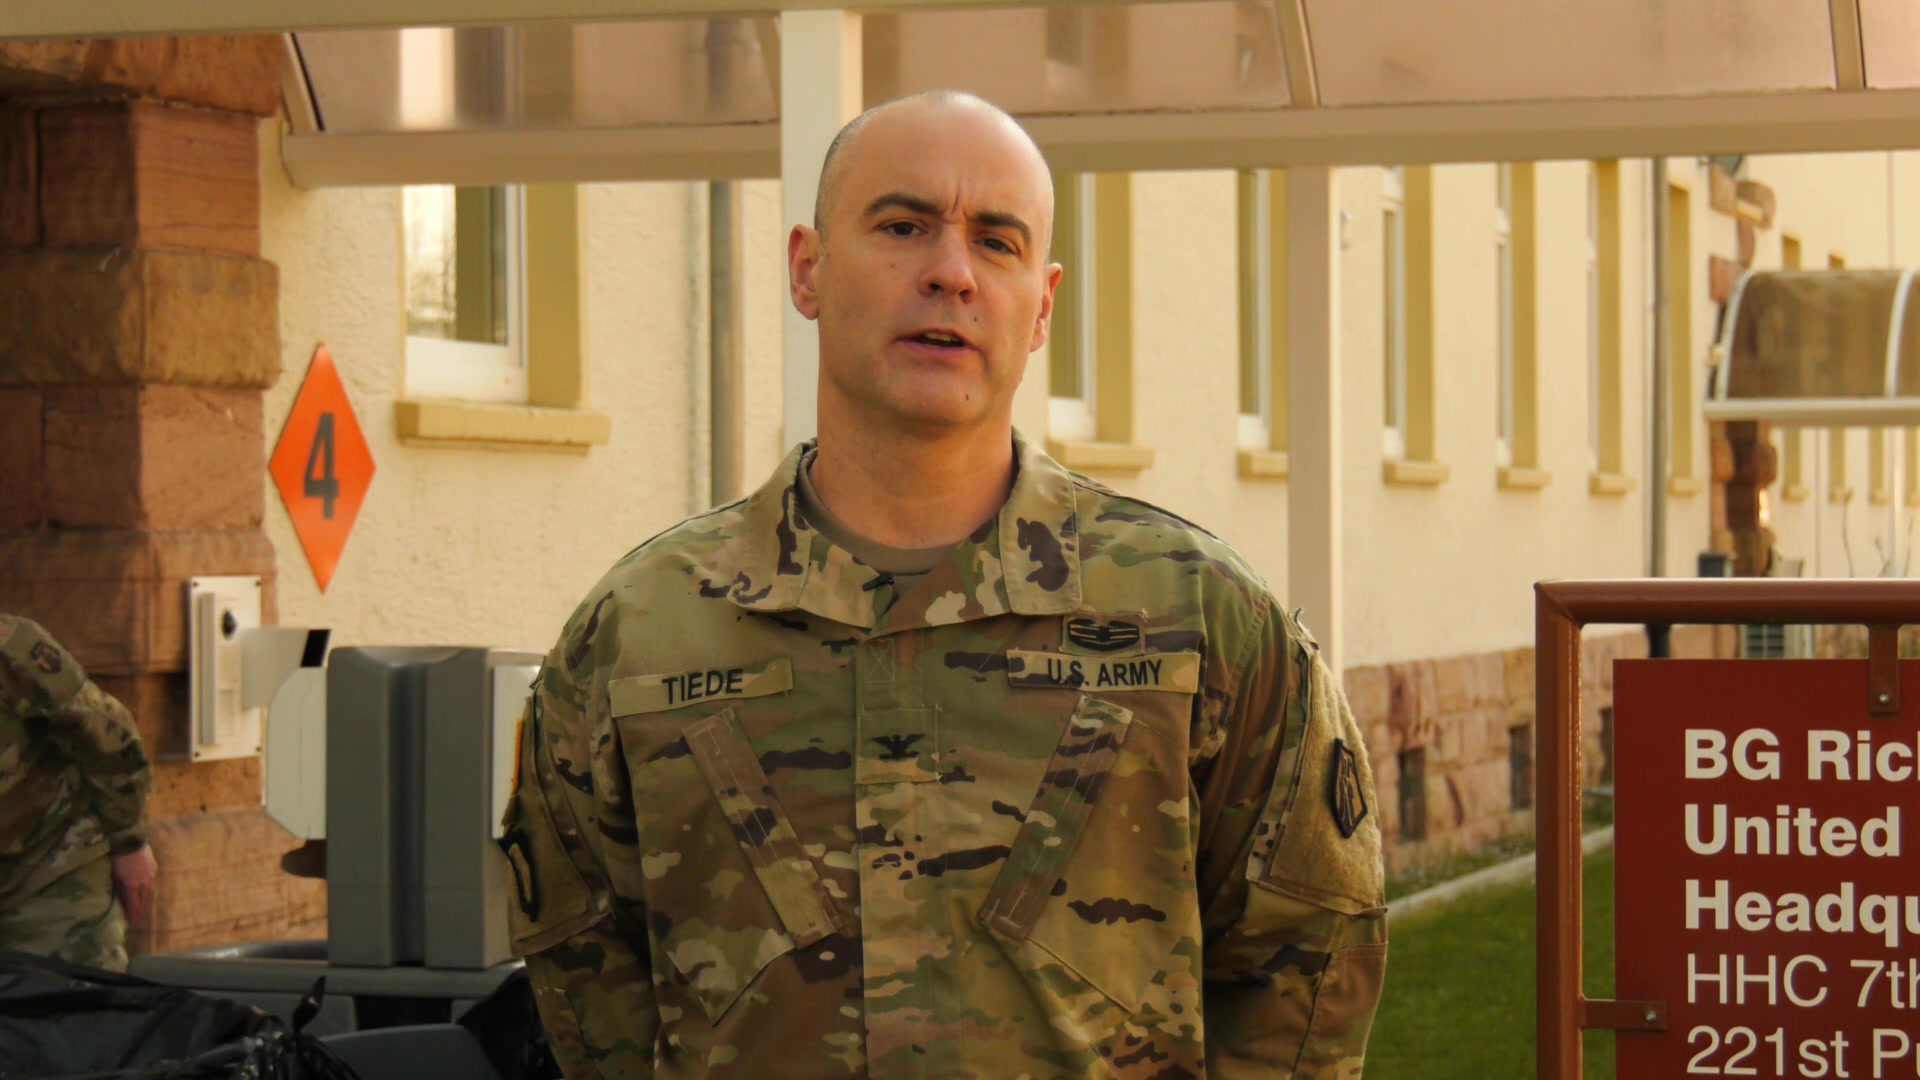 7th MSC Command Surgeon, Col. Jeffrey Tiede, discusses continued precautionary measures to carry out during COVID-19.